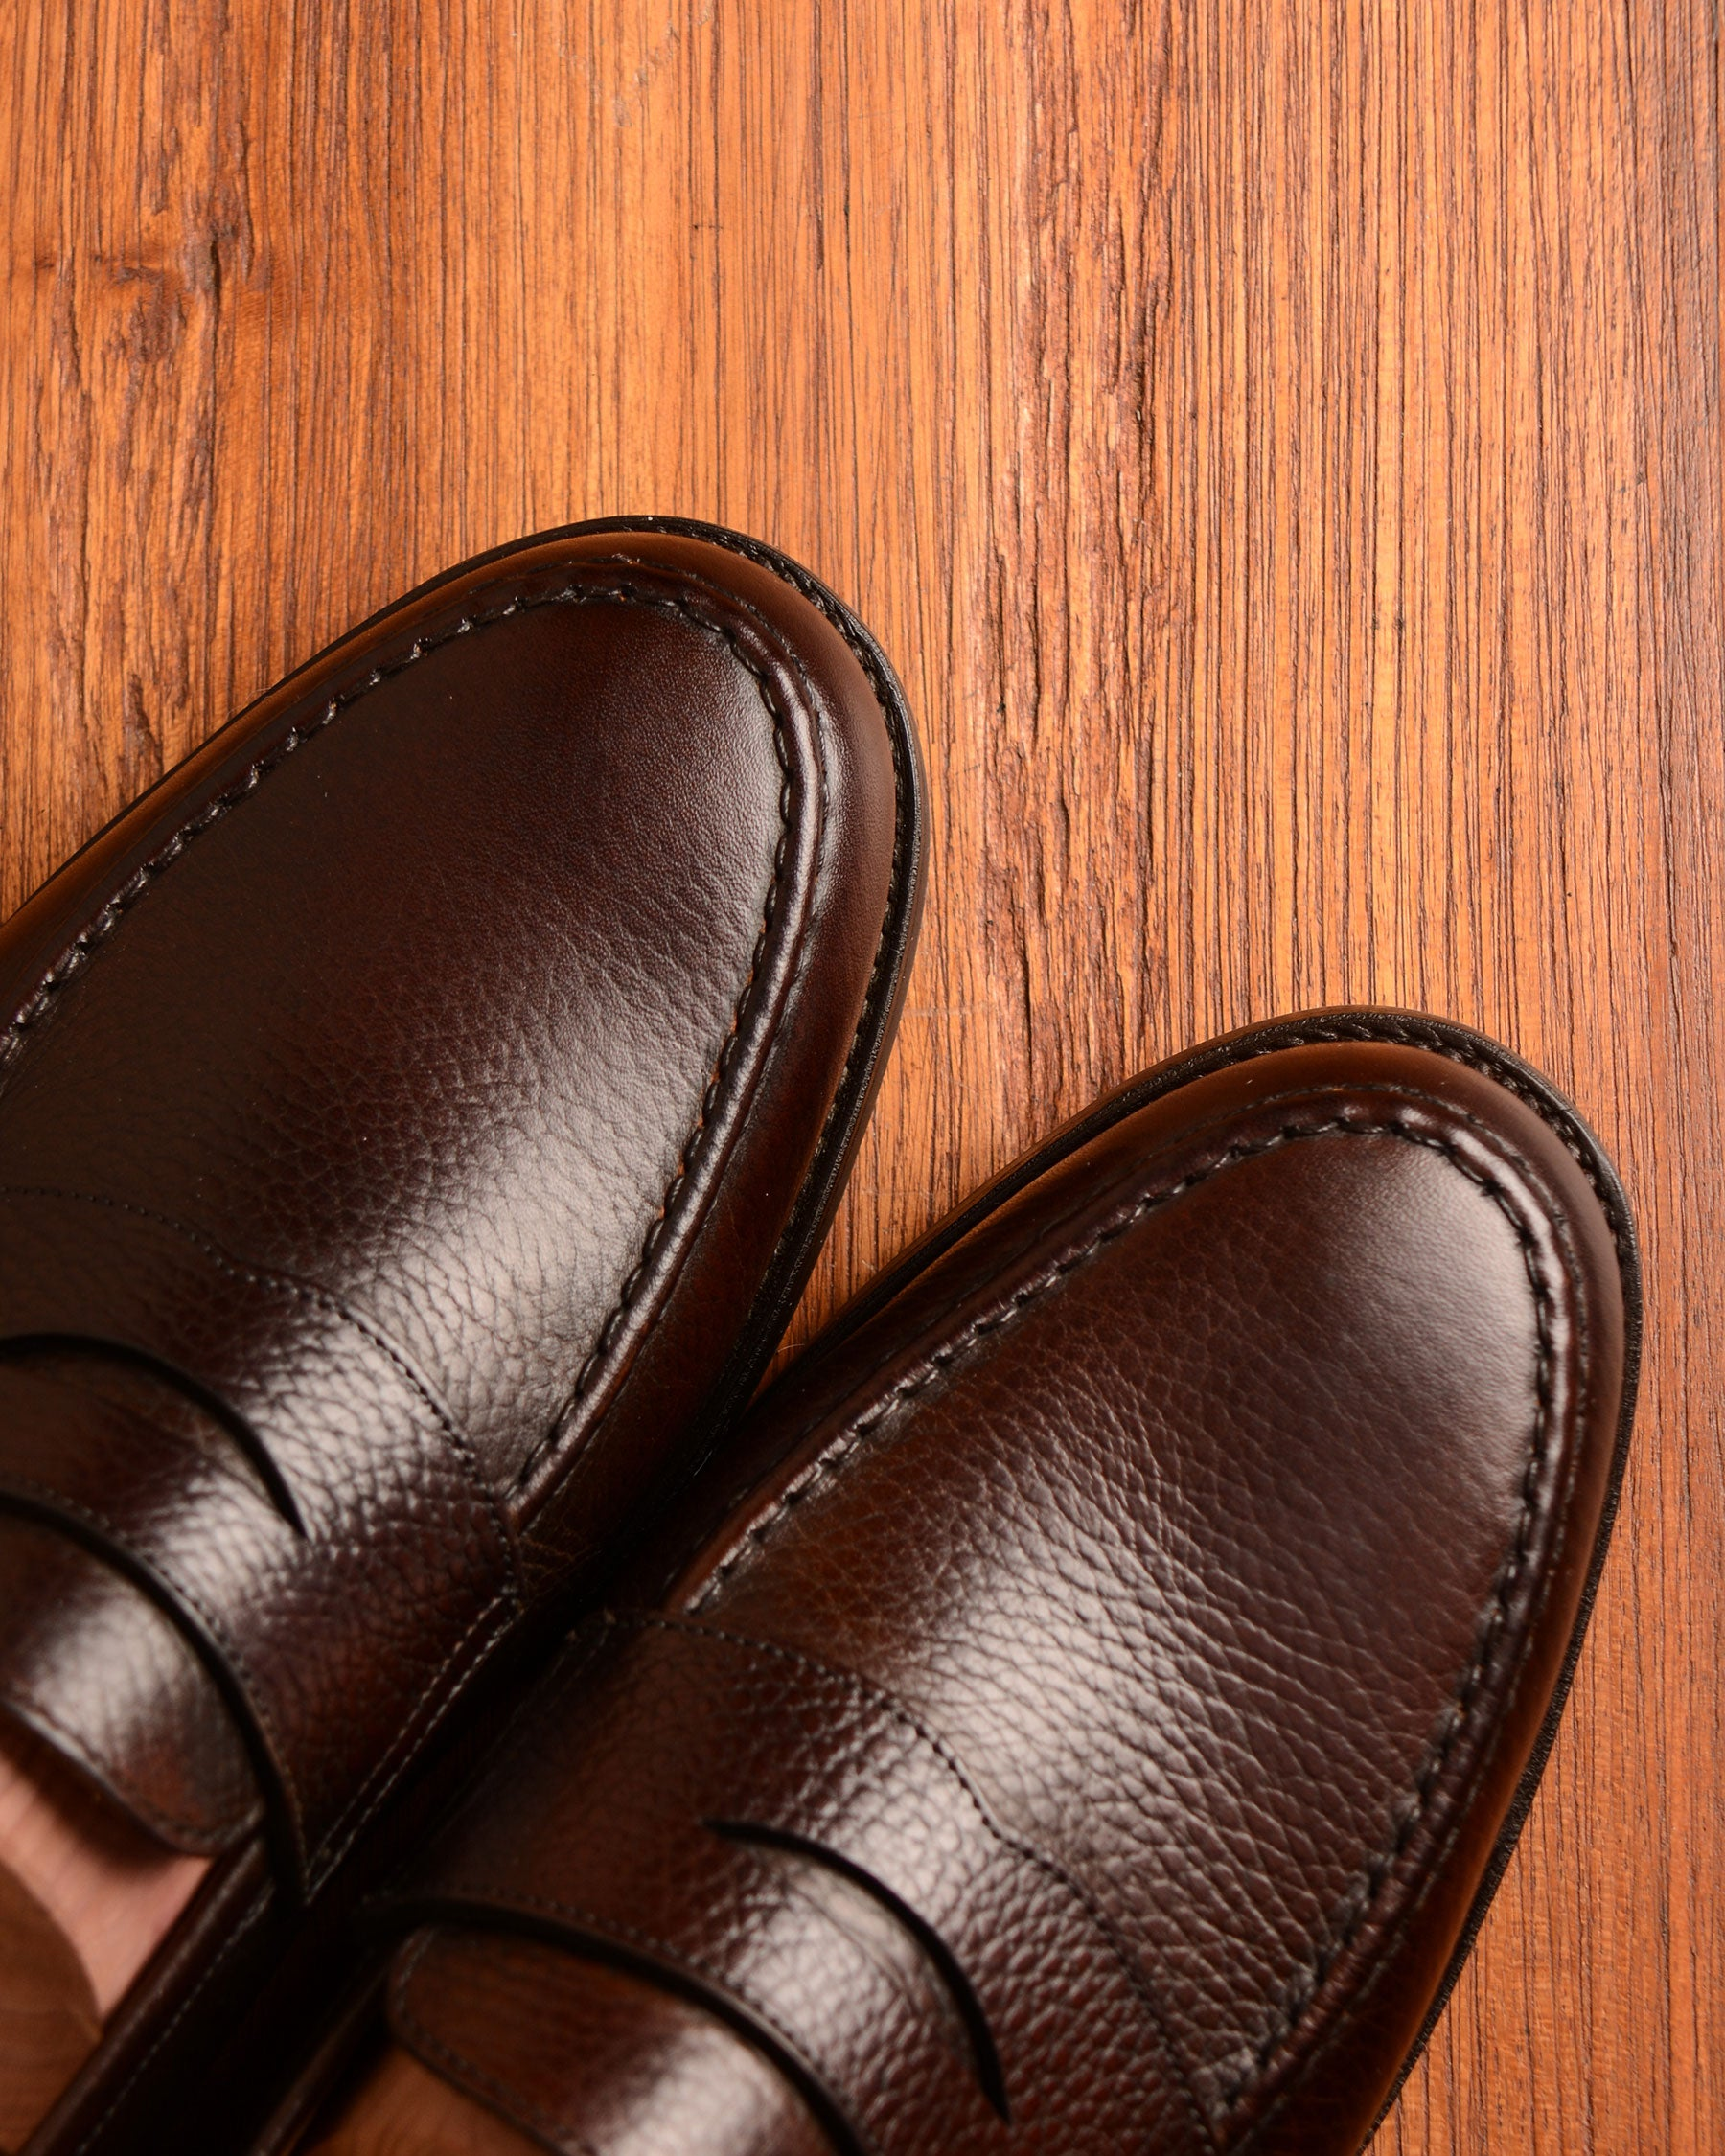 Crockett & Jones Boston - Brown Grain